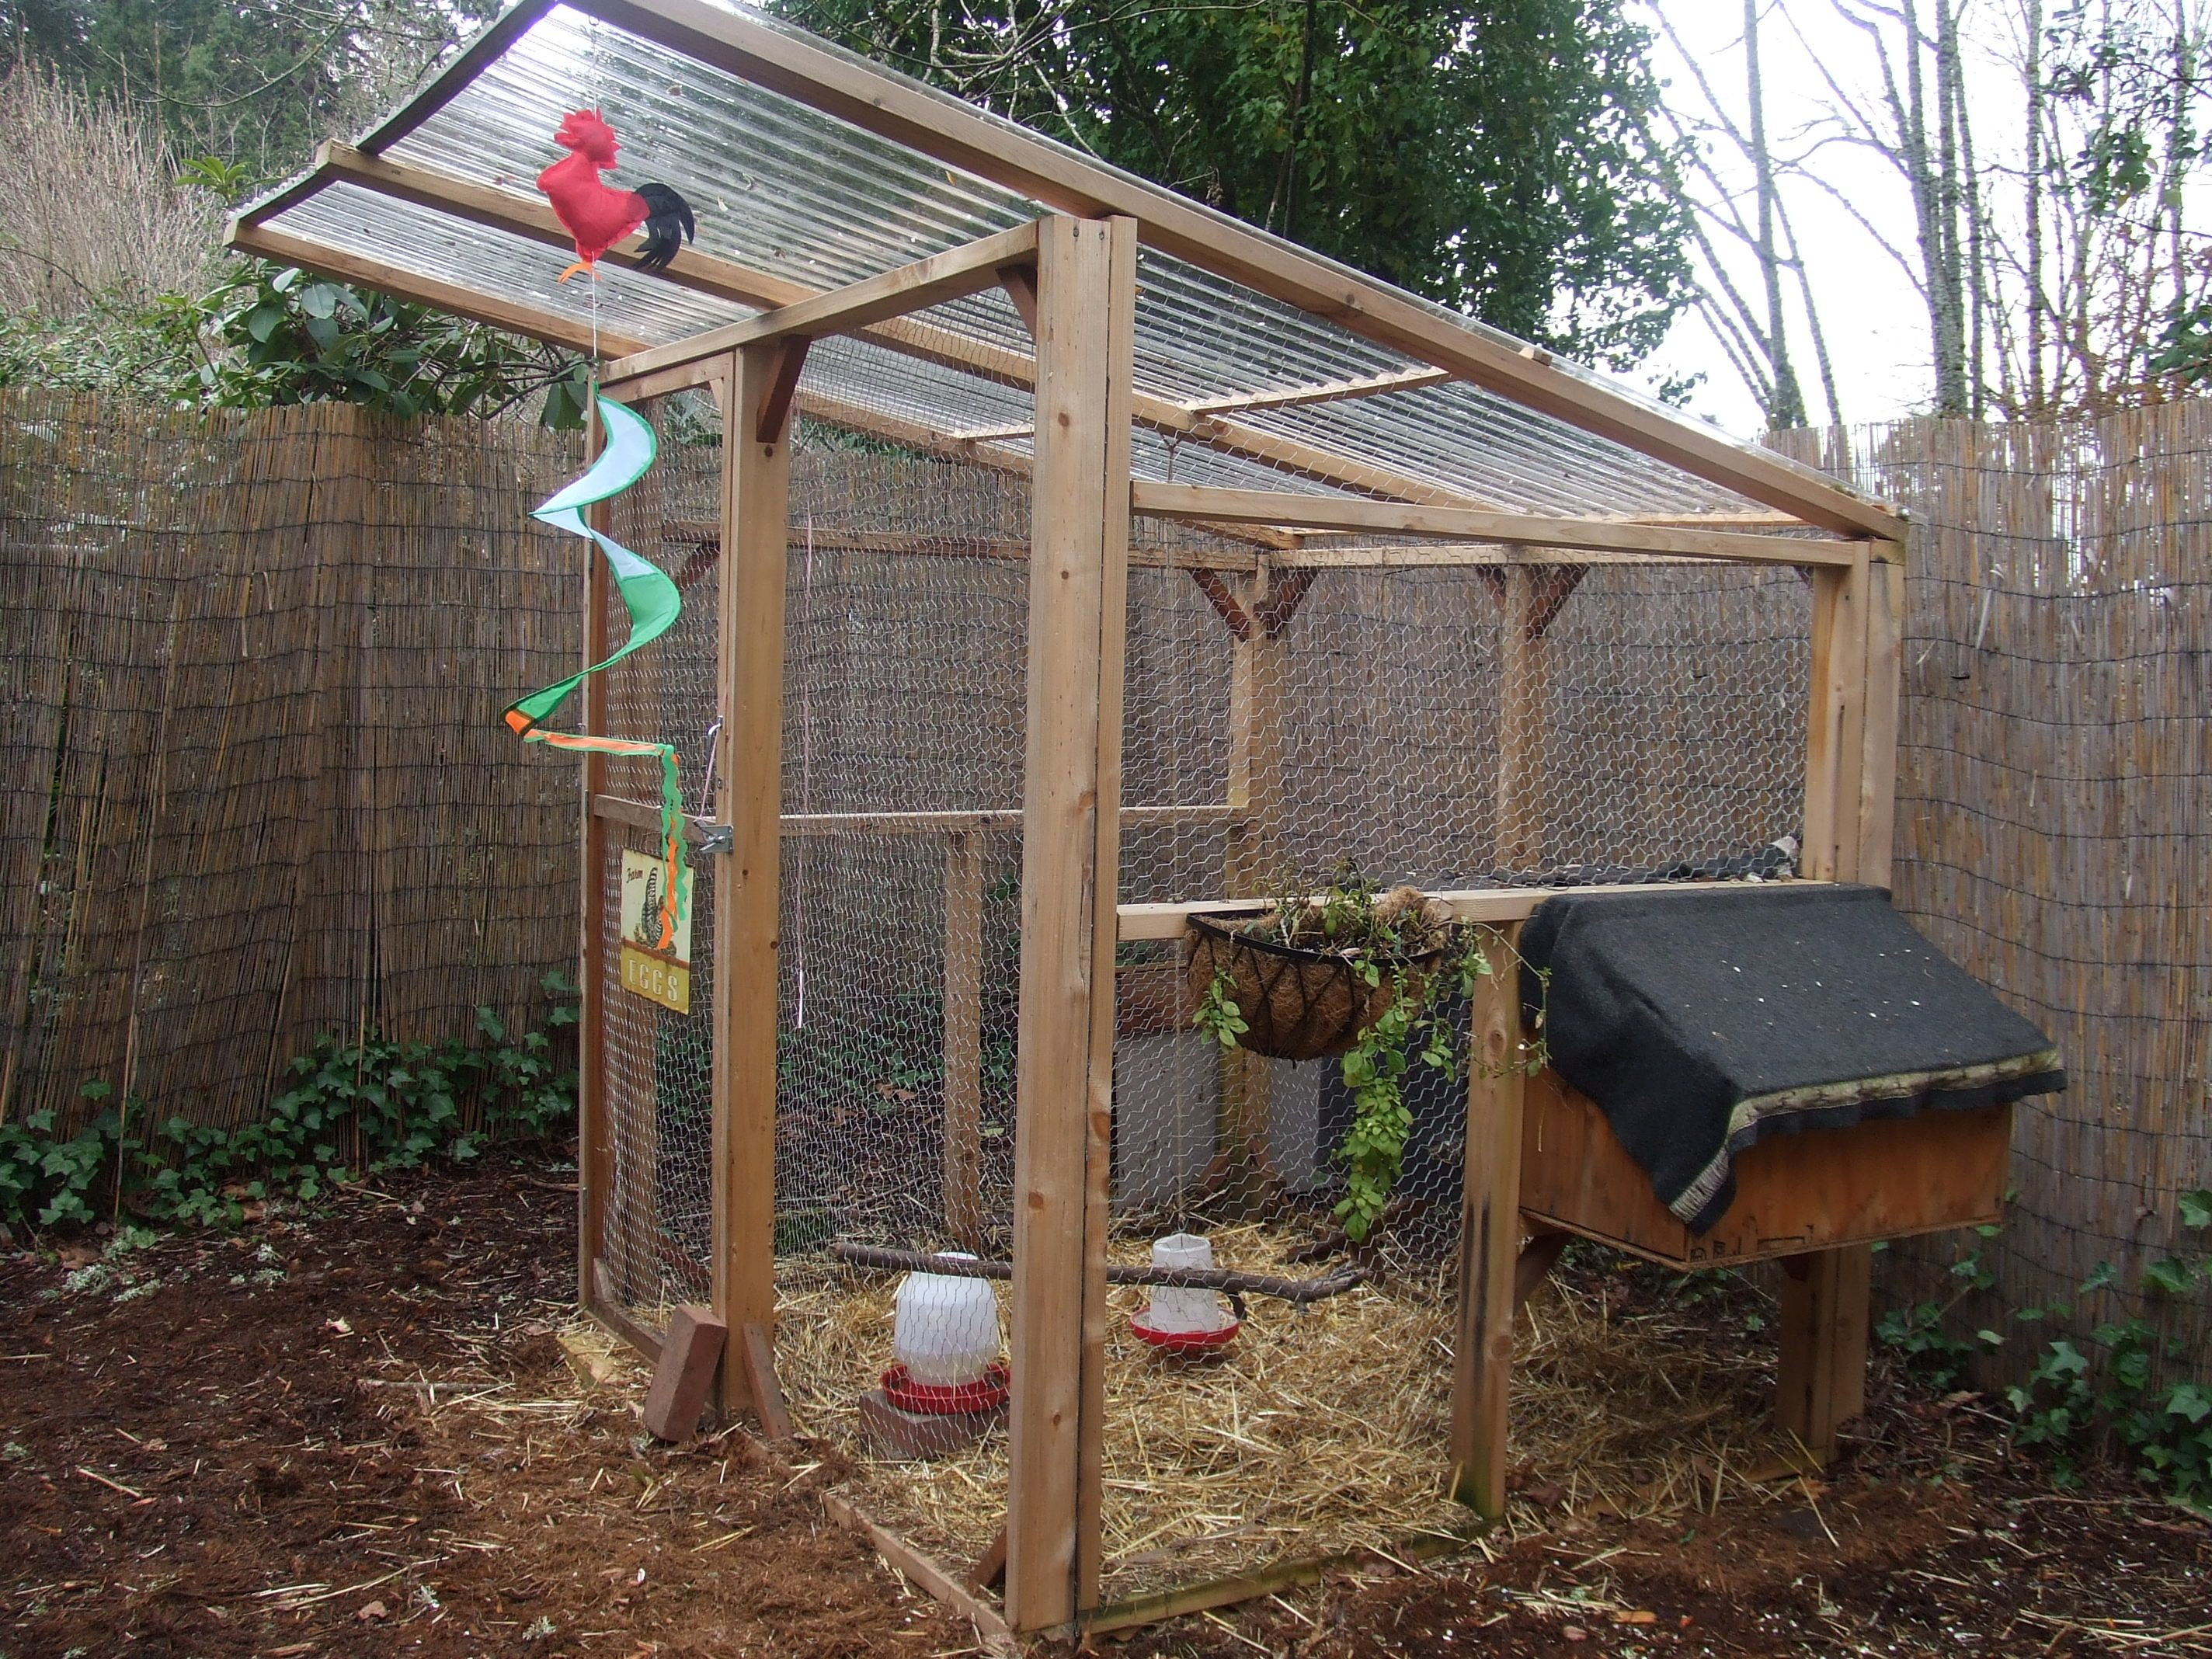 Best ideas about Chicken Coop DIY . Save or Pin DIY Chicken Coop Scarlett Ibis Pinterest Now.